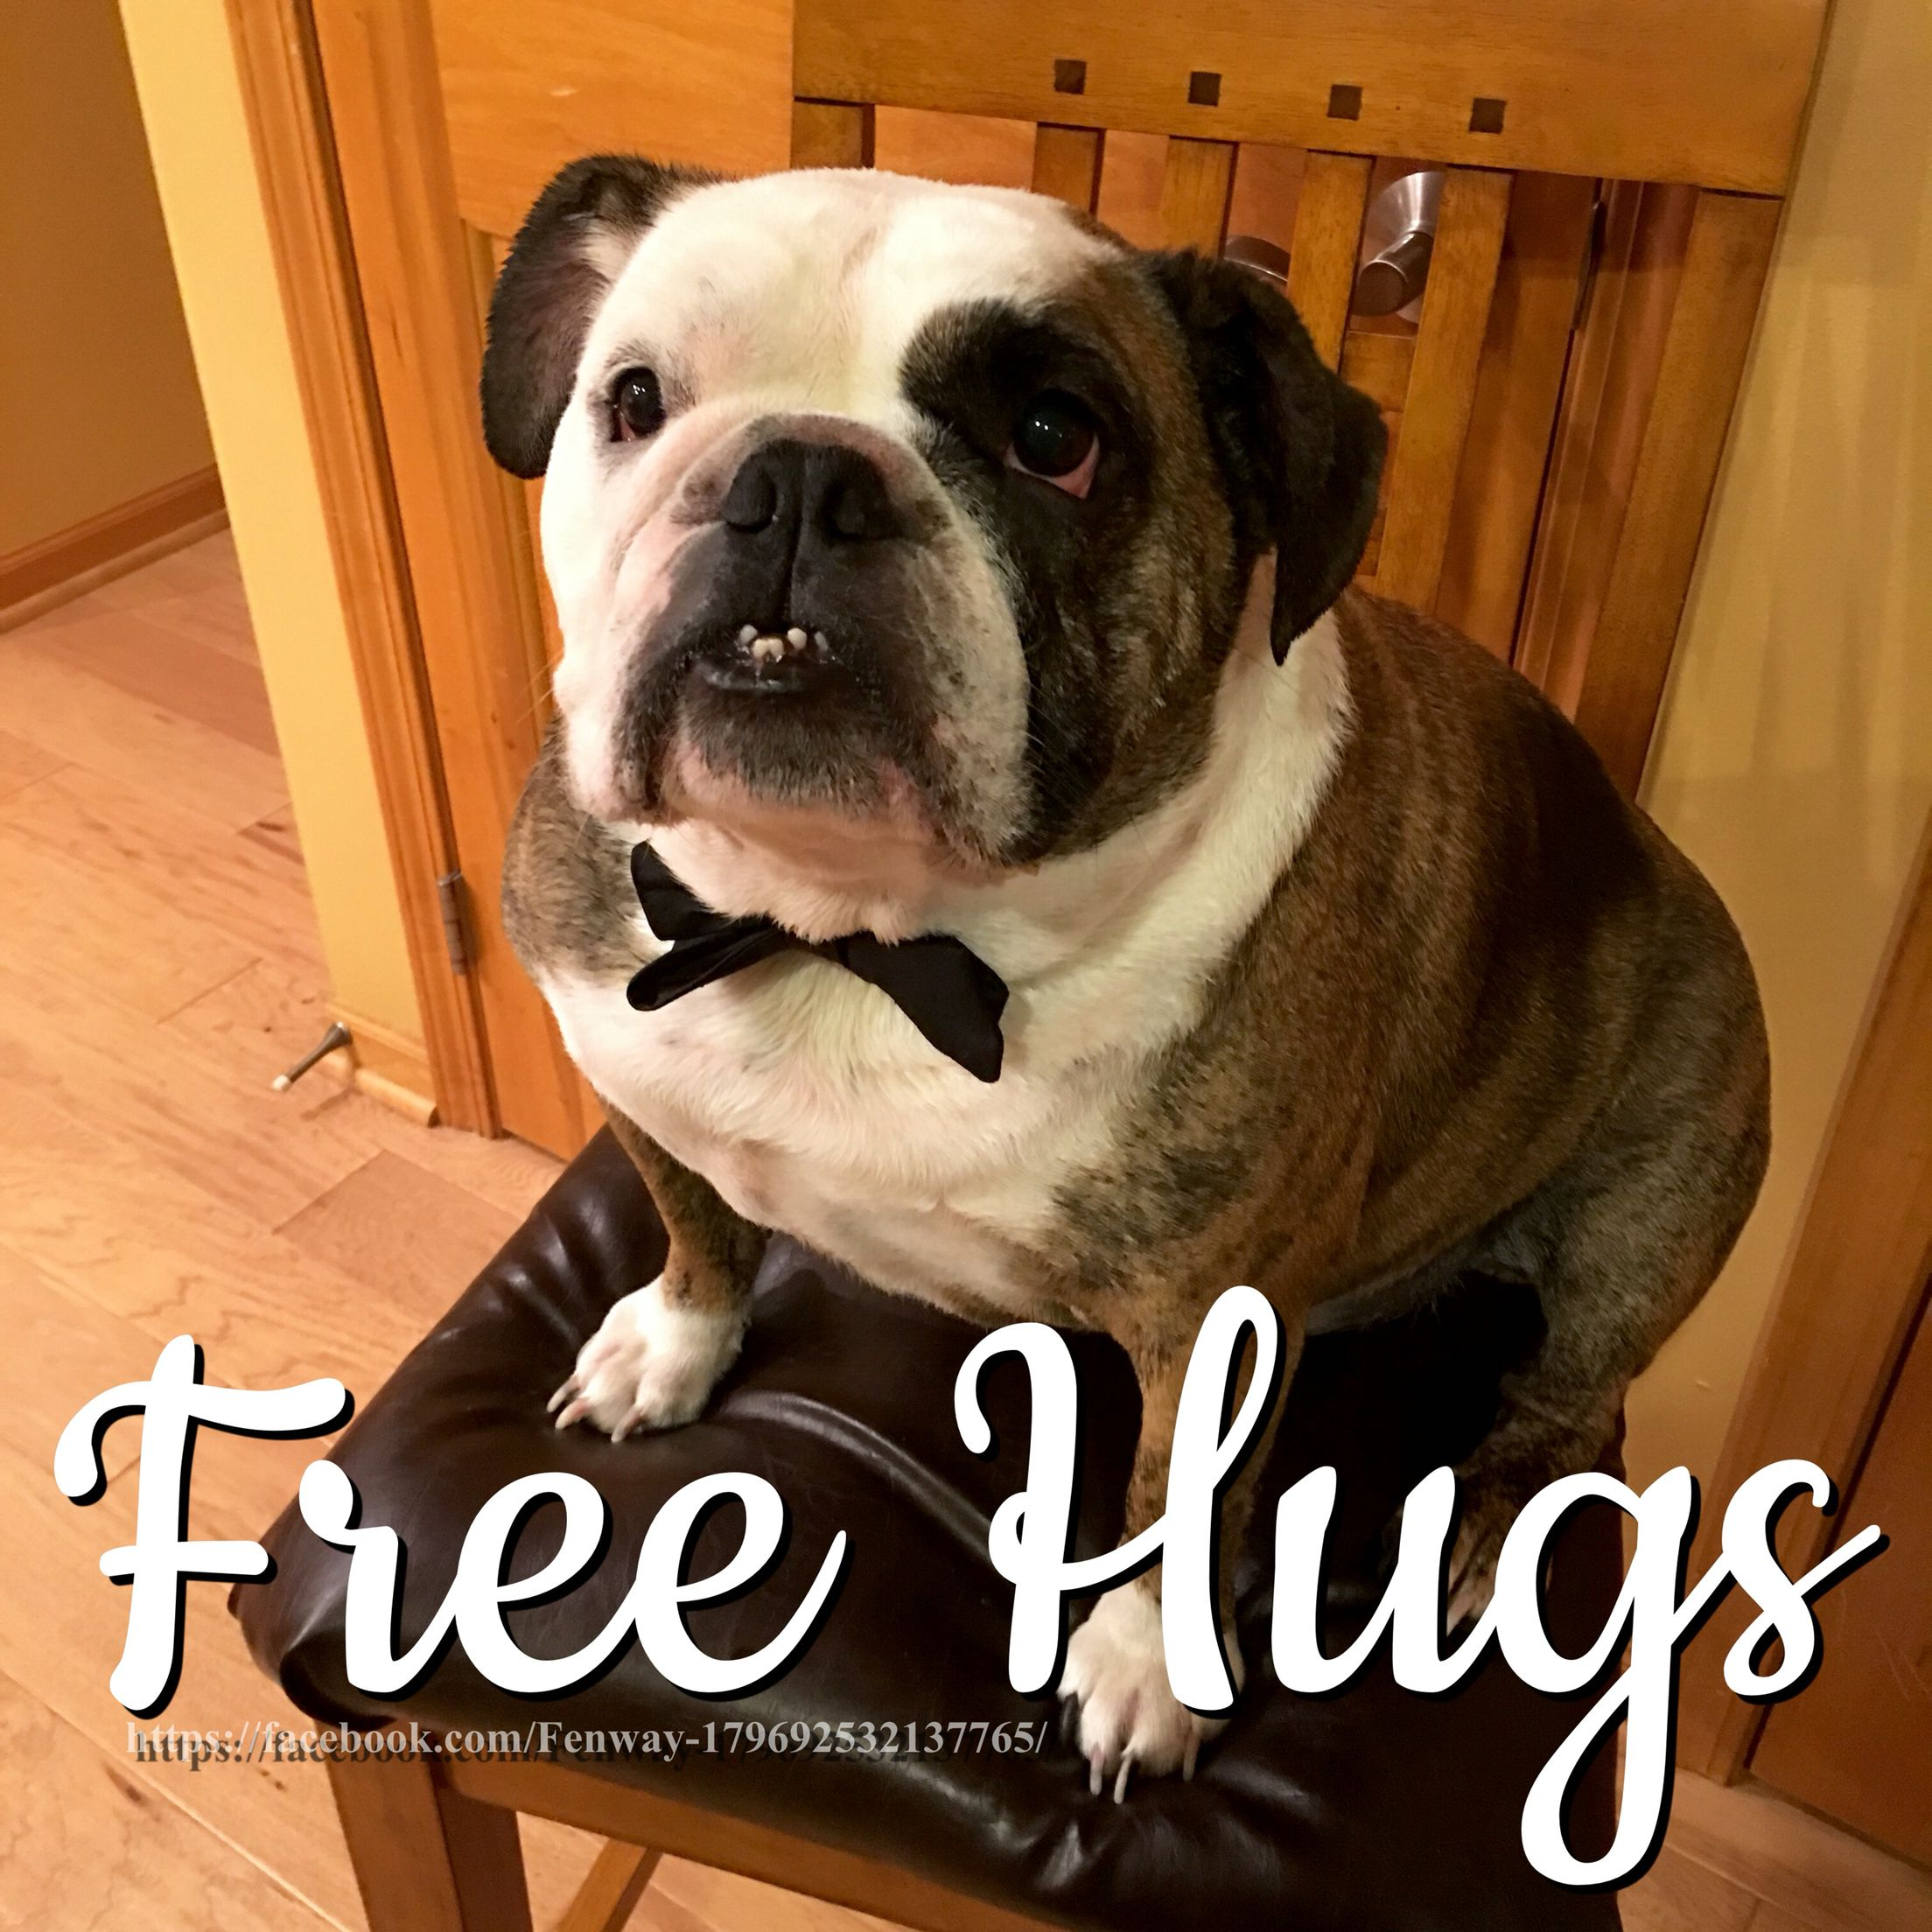 21Jan16 Fenway - Bulldogs - Hugs